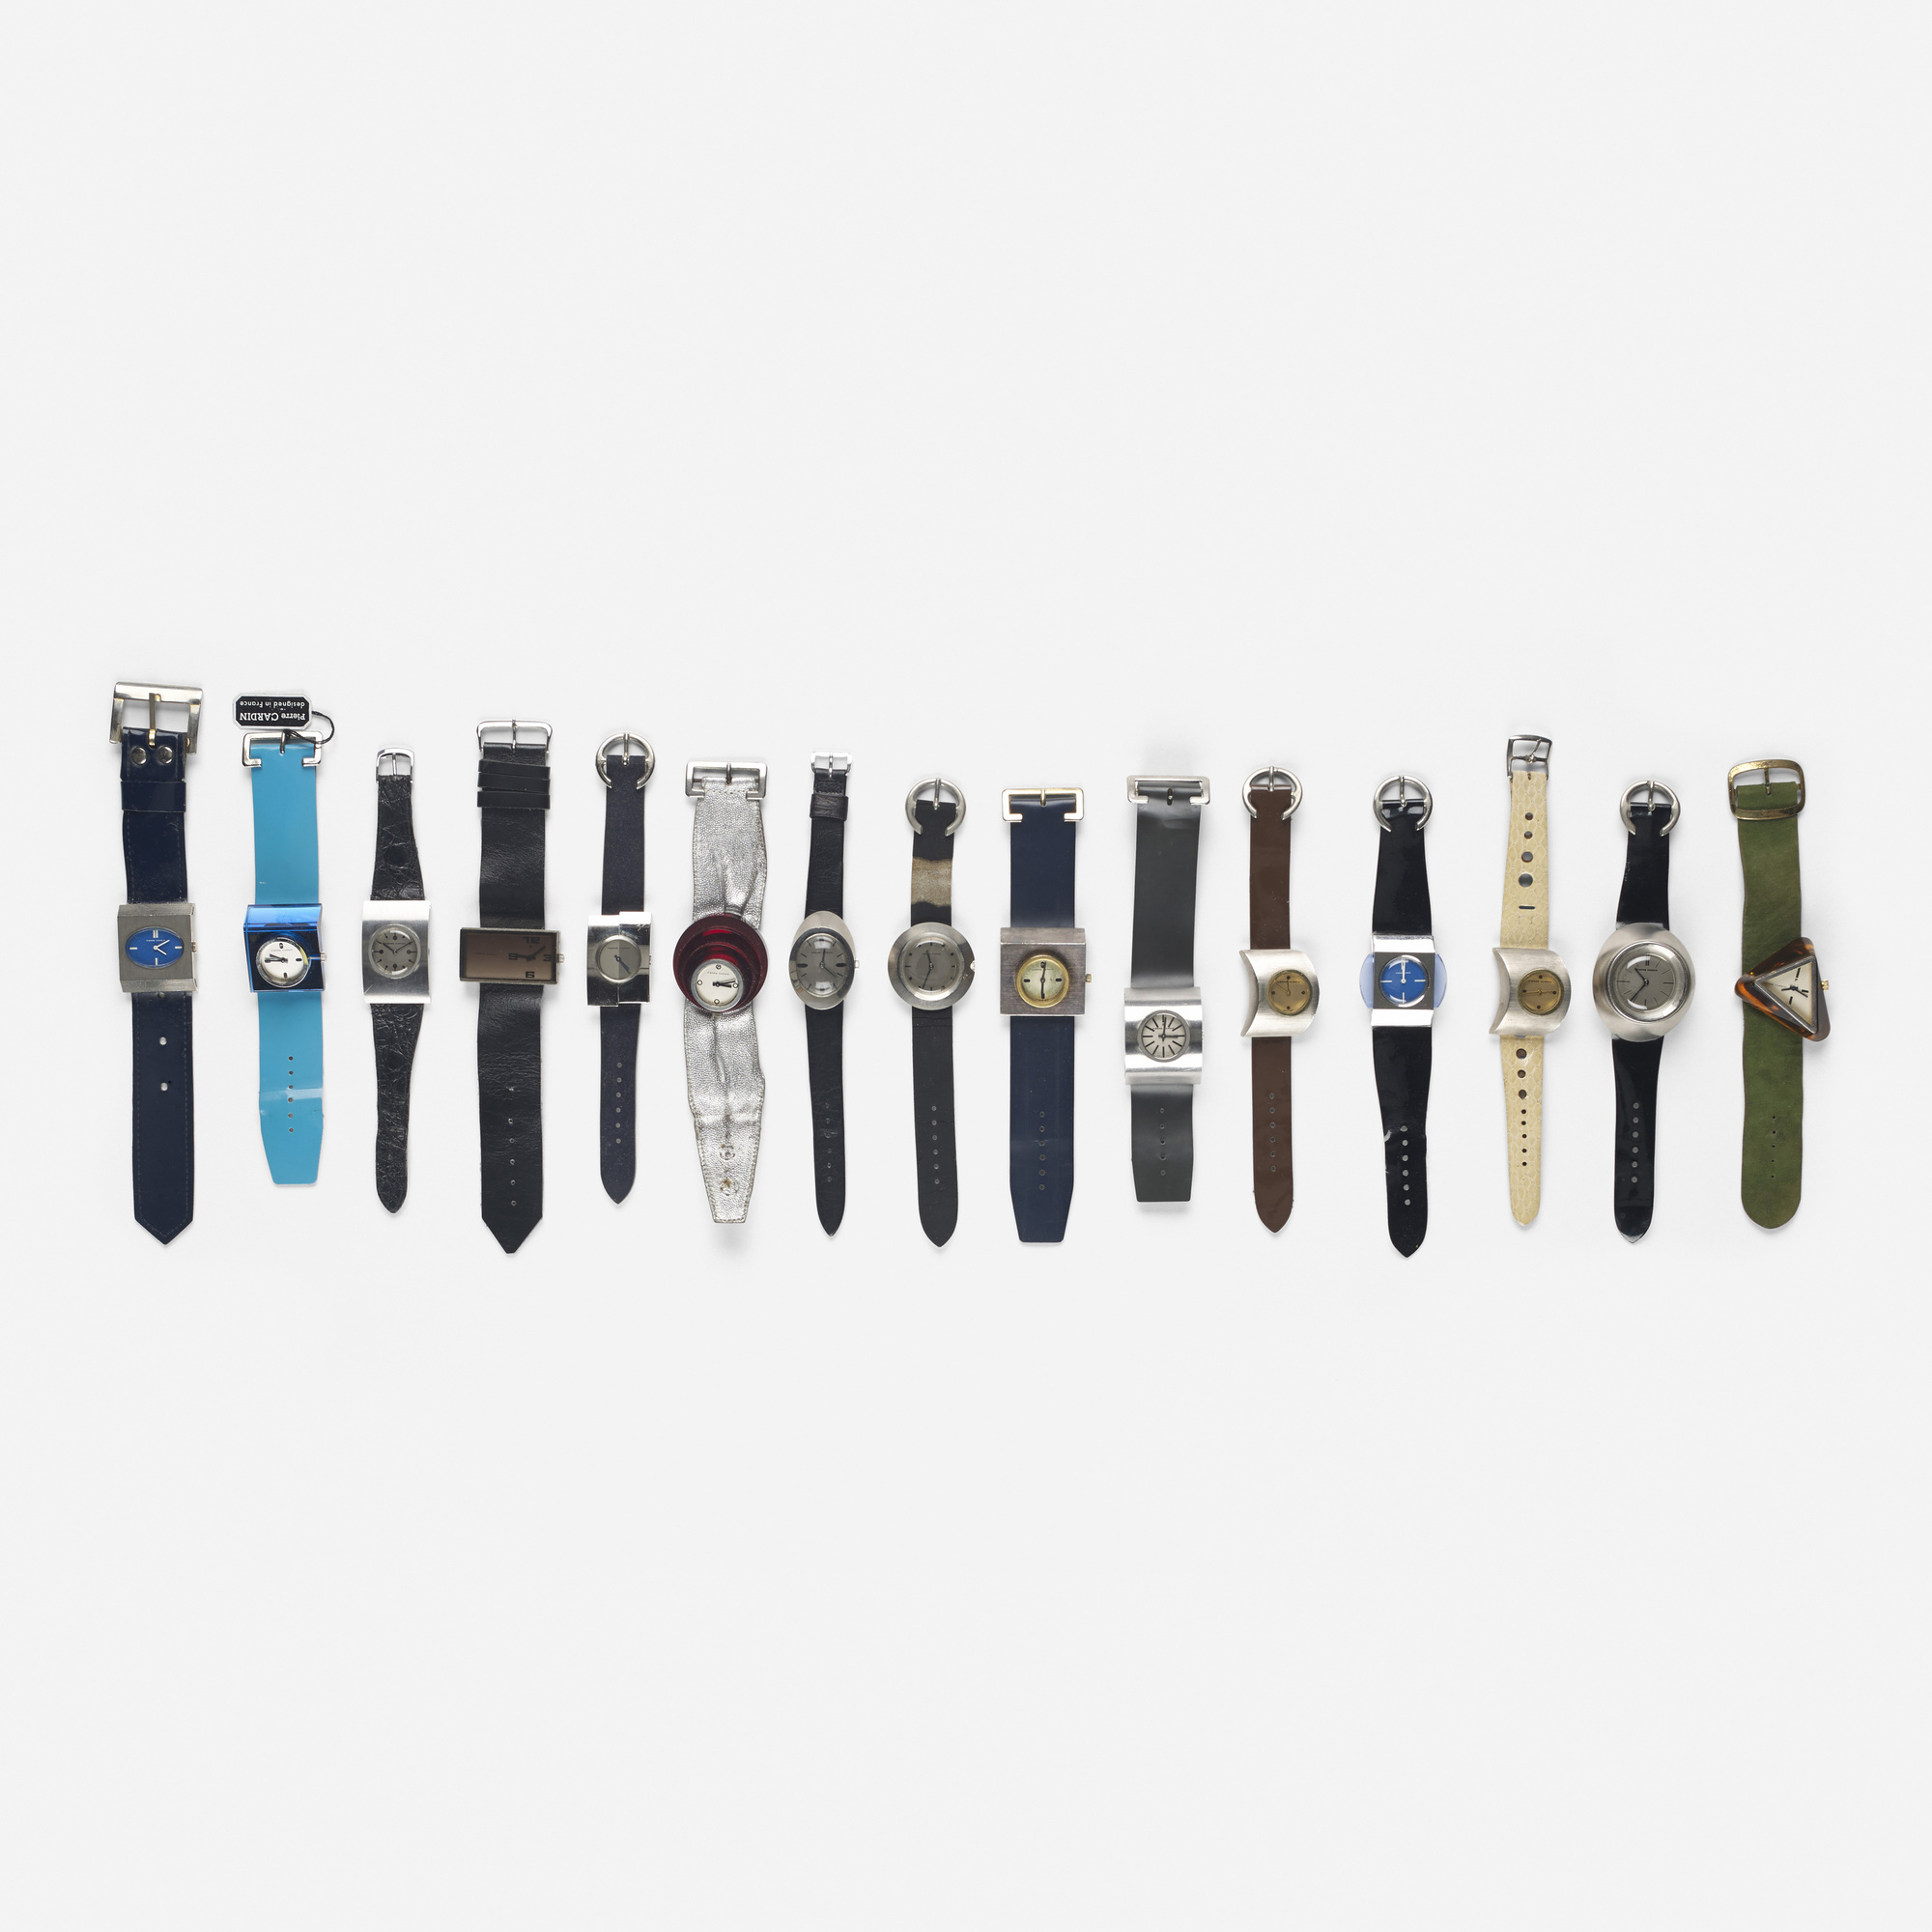 306: Pierre Cardin / collection of fifteen watches from the Espace Watch Line (1 of 2)